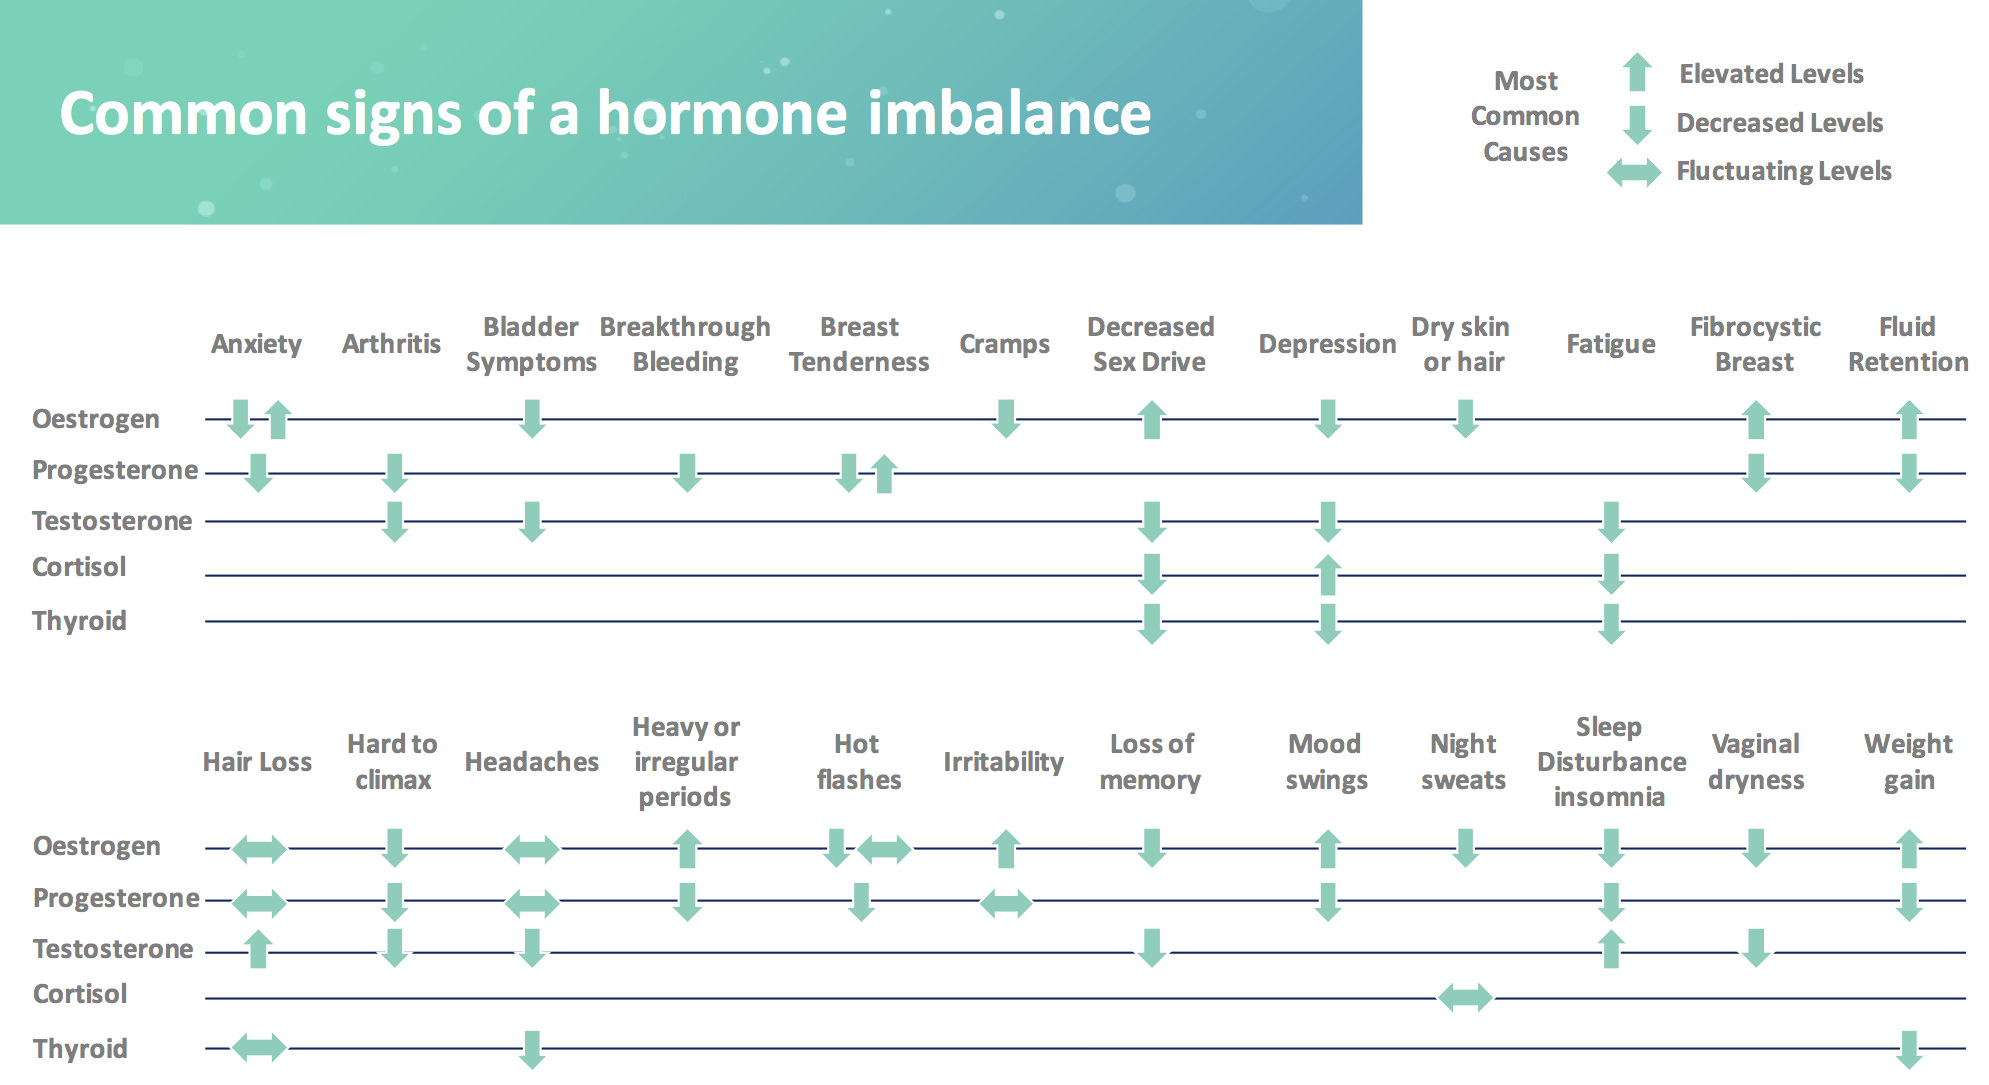 common-signs-of-a-hormone-imbalance